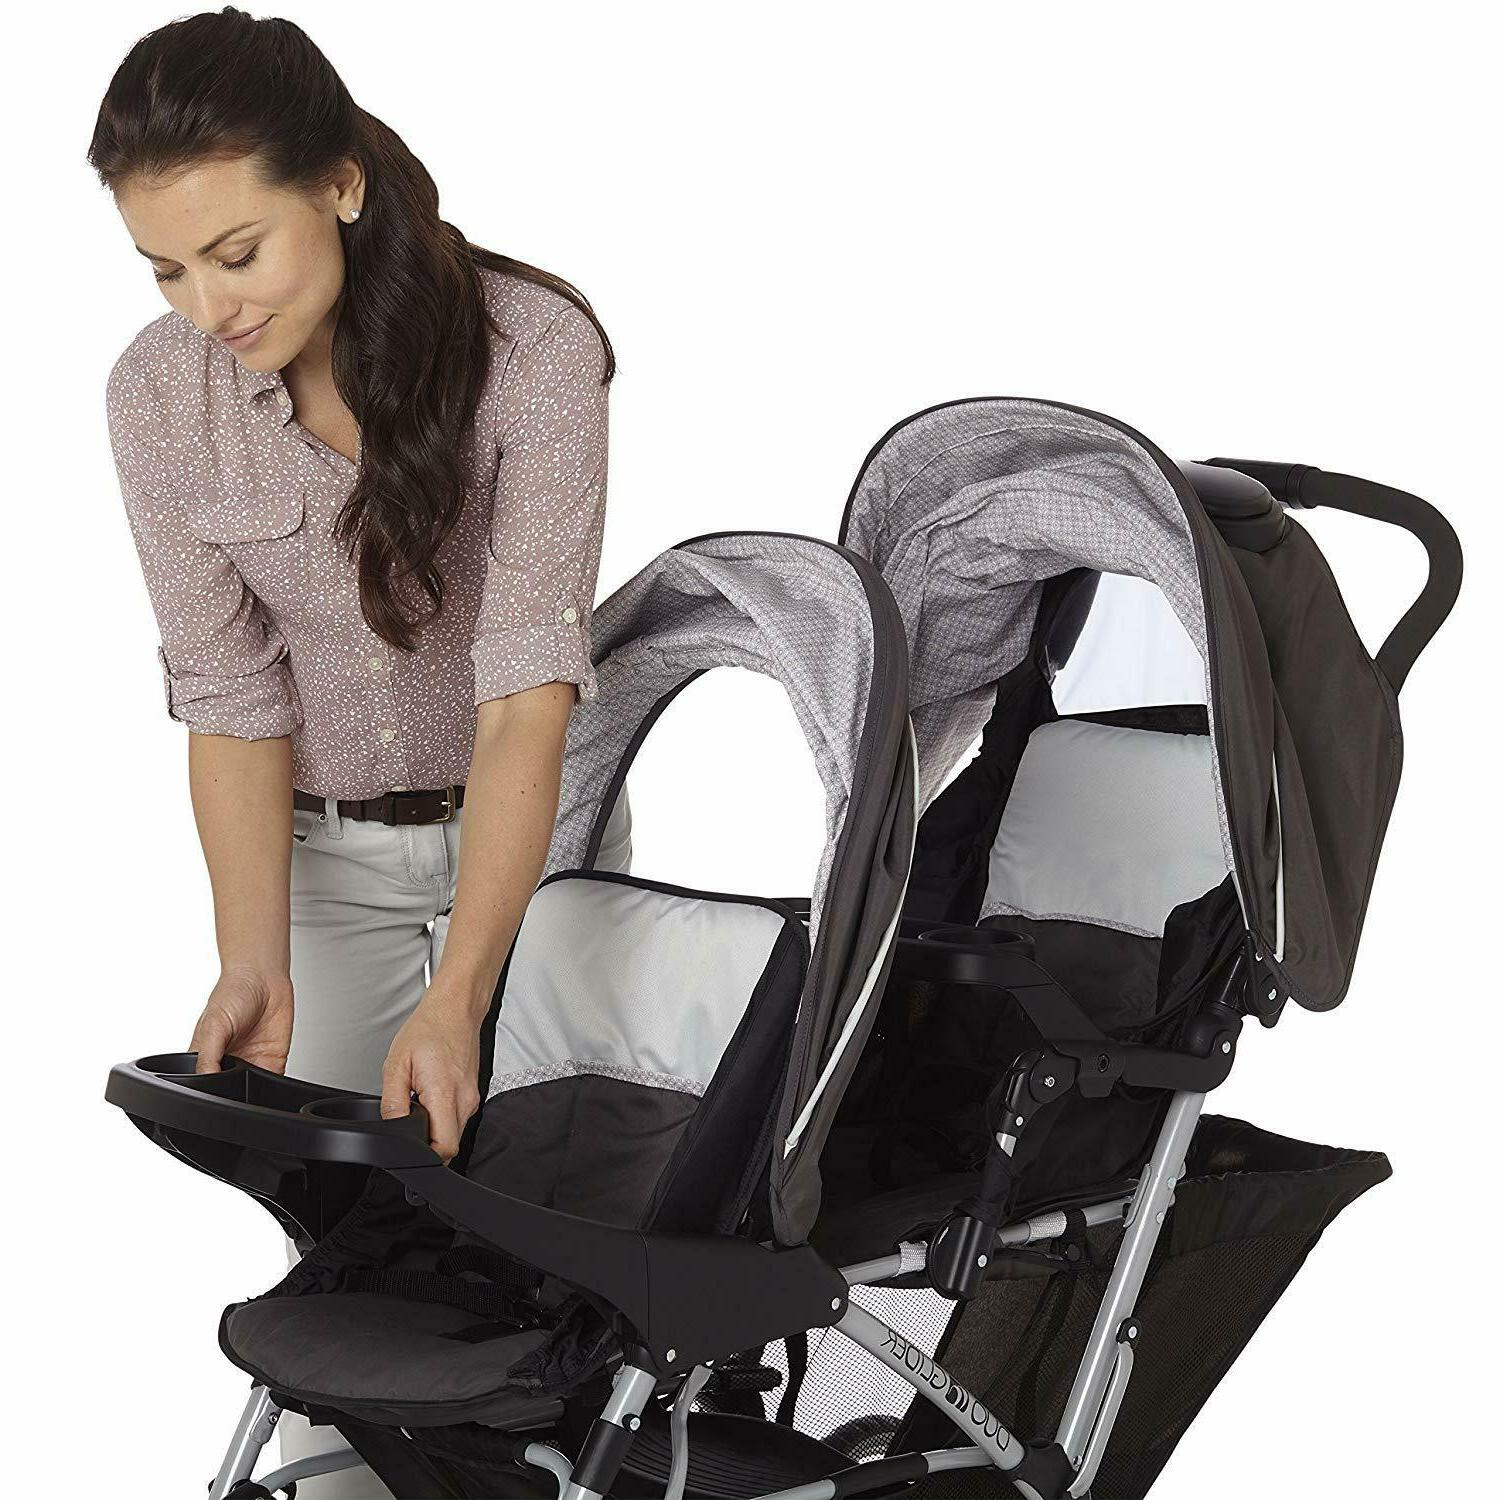 Graco Double Stroller with Tandem Seating